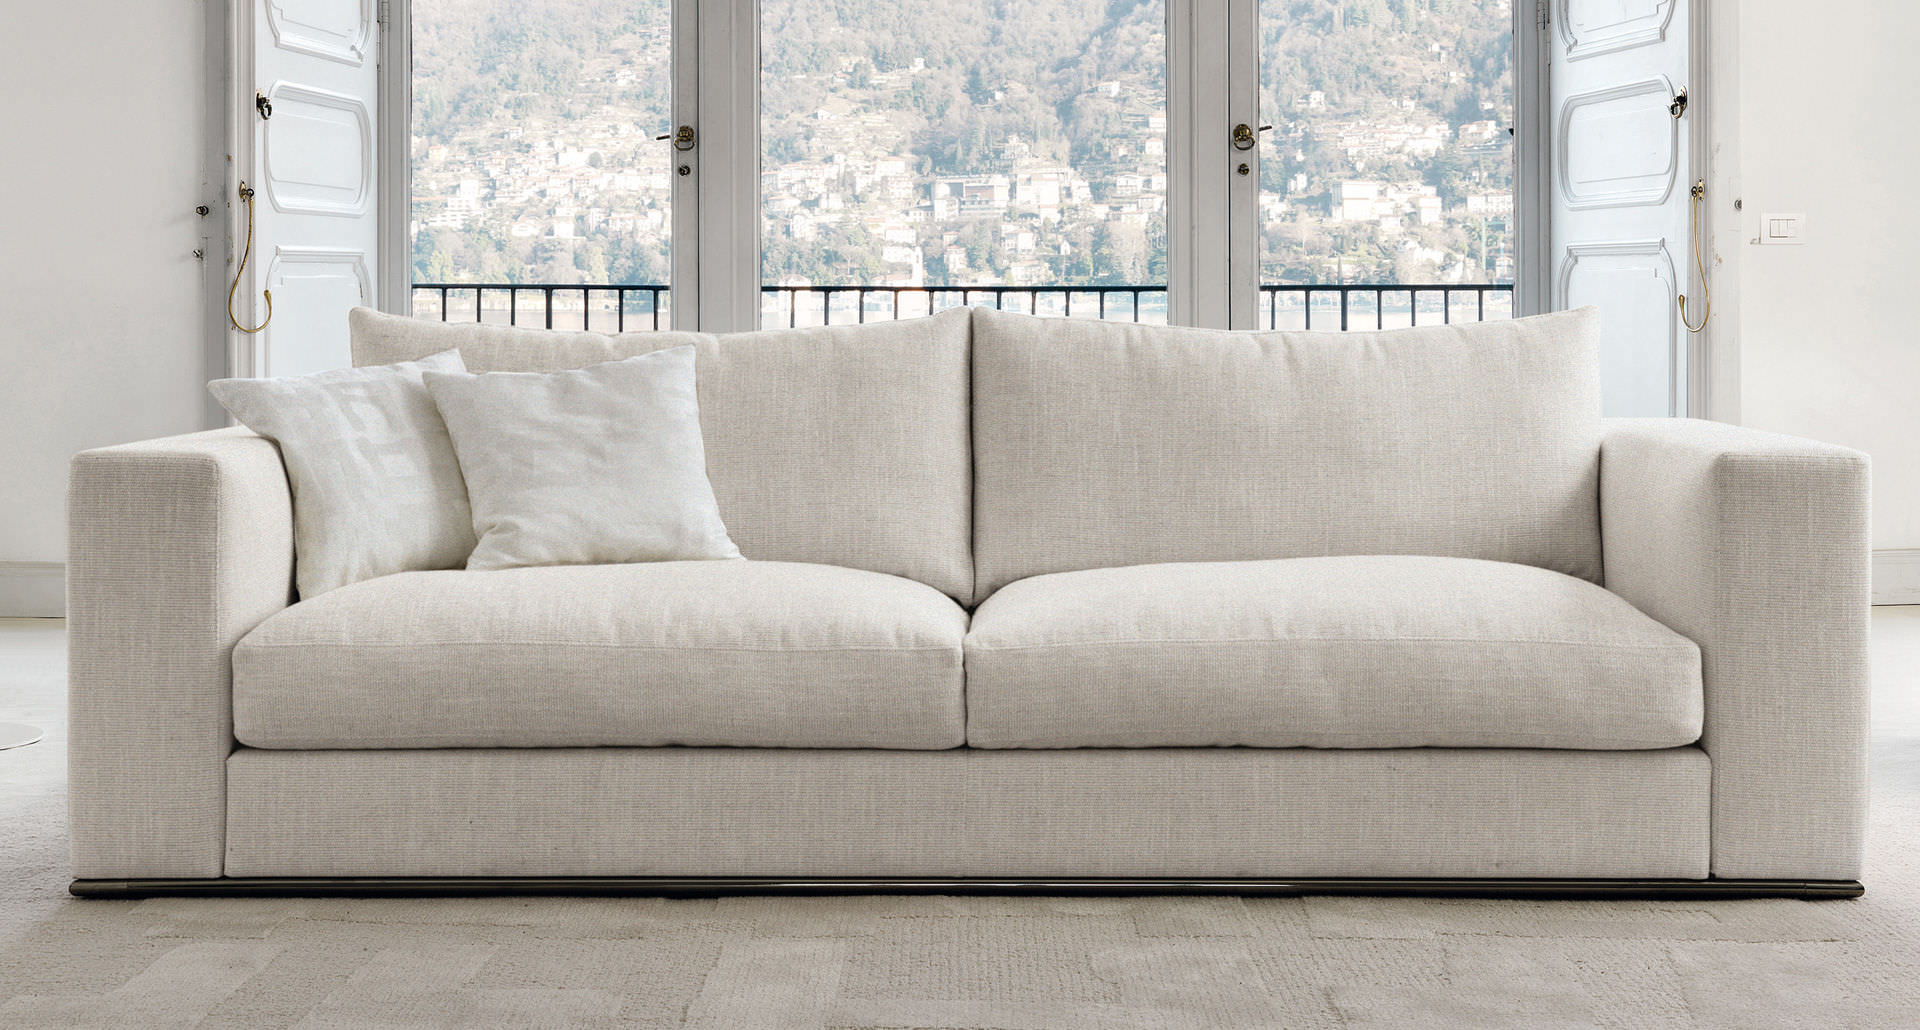 How to judge a sofa for quality etch bolts for Sofas